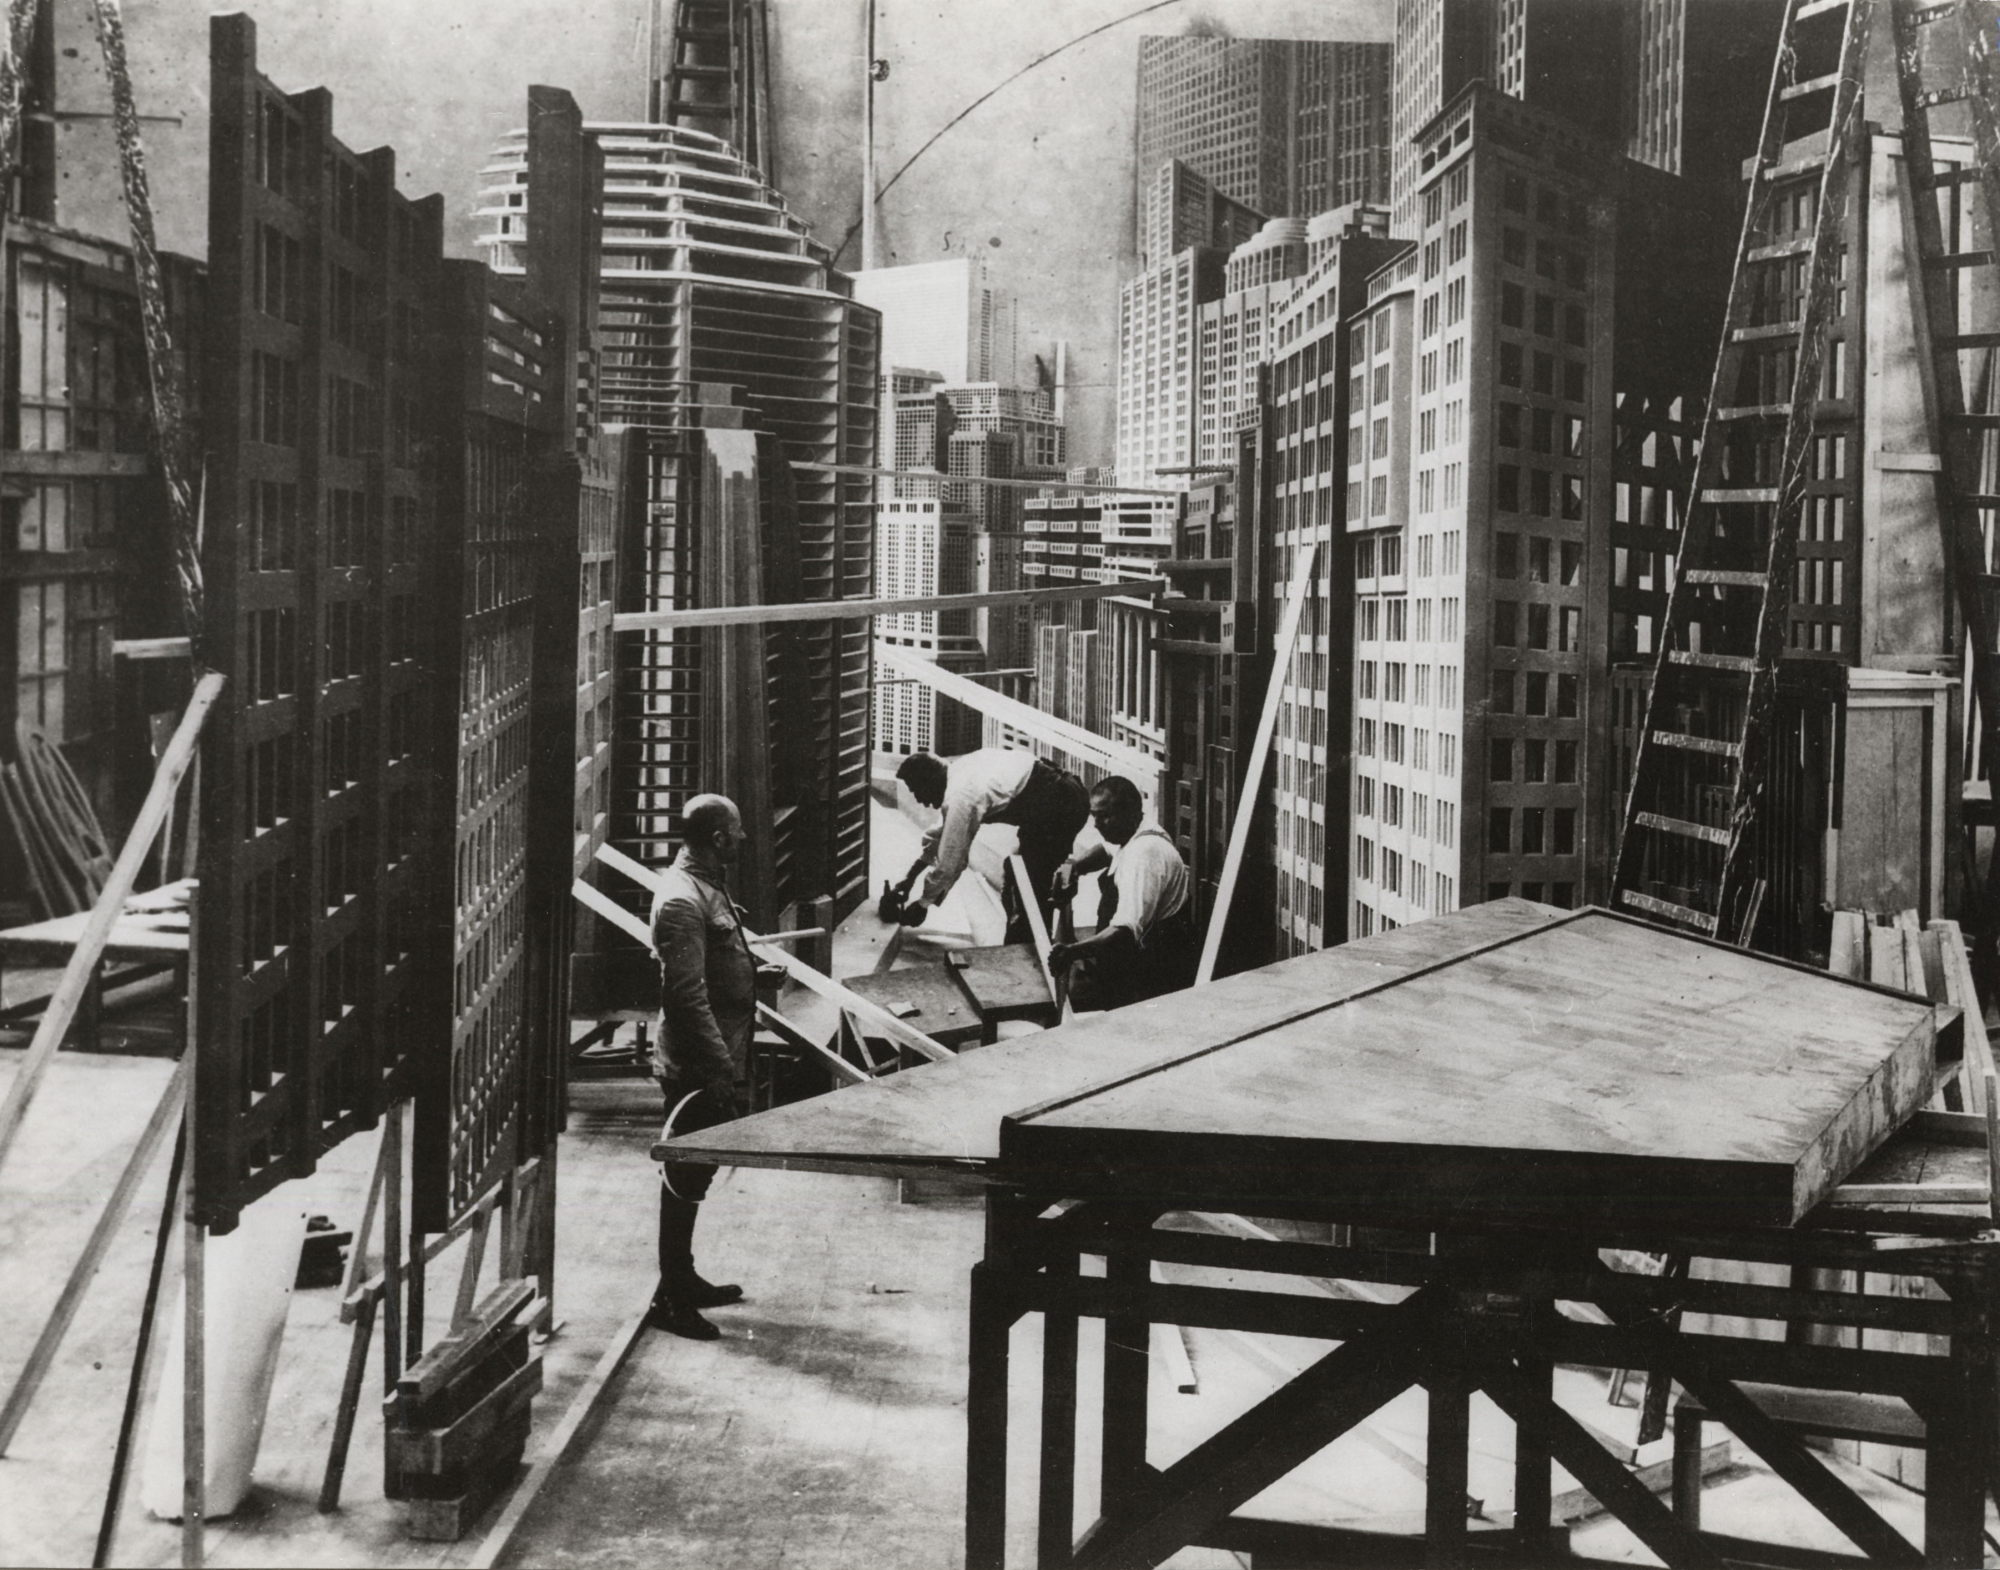 Source: Heise.de Making of Metropolis